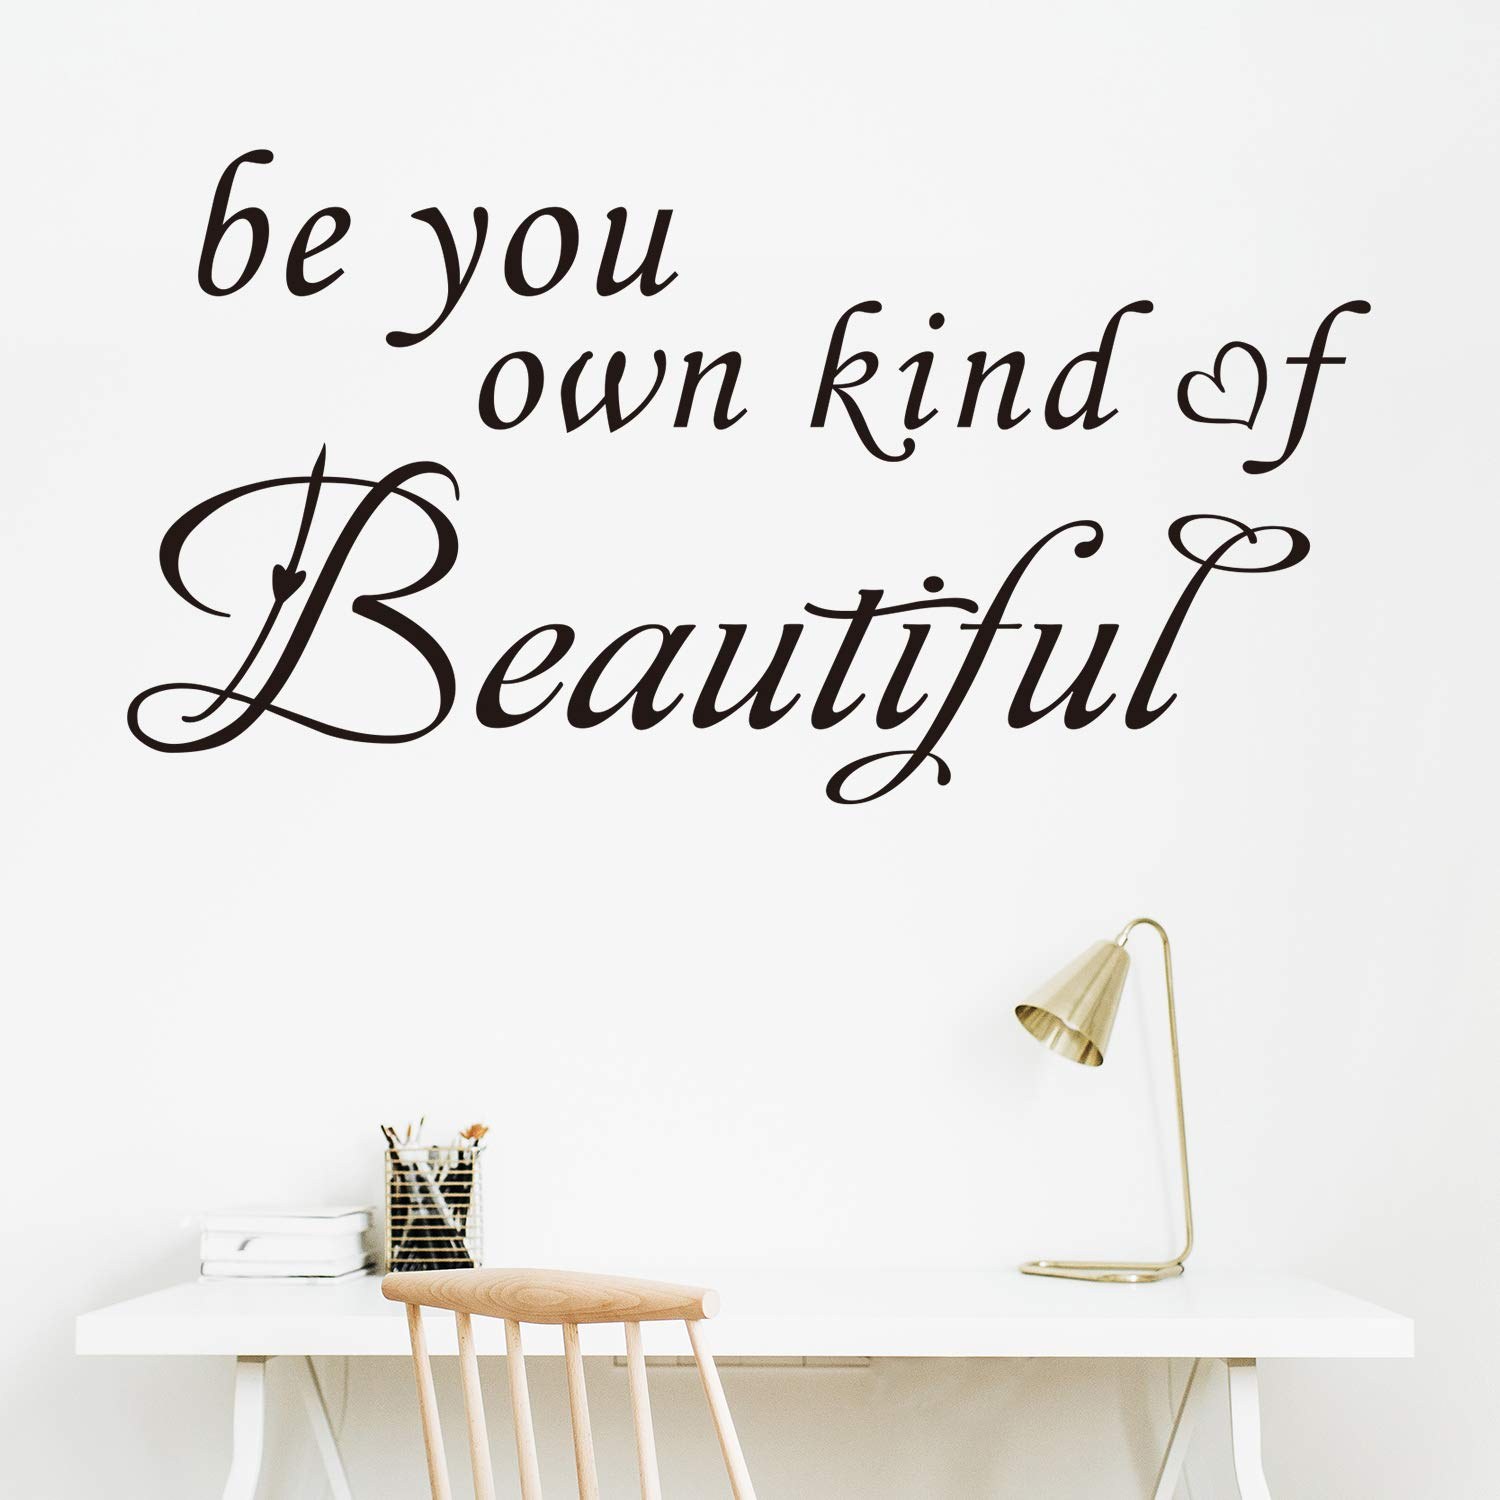 Amazon Com Vodoe Inspirational Wall Decals Wall Decals For Girls Quote Women Beauty Salon Bedroom Bathroom Lettering Art Decor Sayings Vinyl Black Stickers Be You Own Kind Of Beautiful 26 5 X14 Home Kitchen,Kitchenaid Dishwasher Installation Kit Home Depot